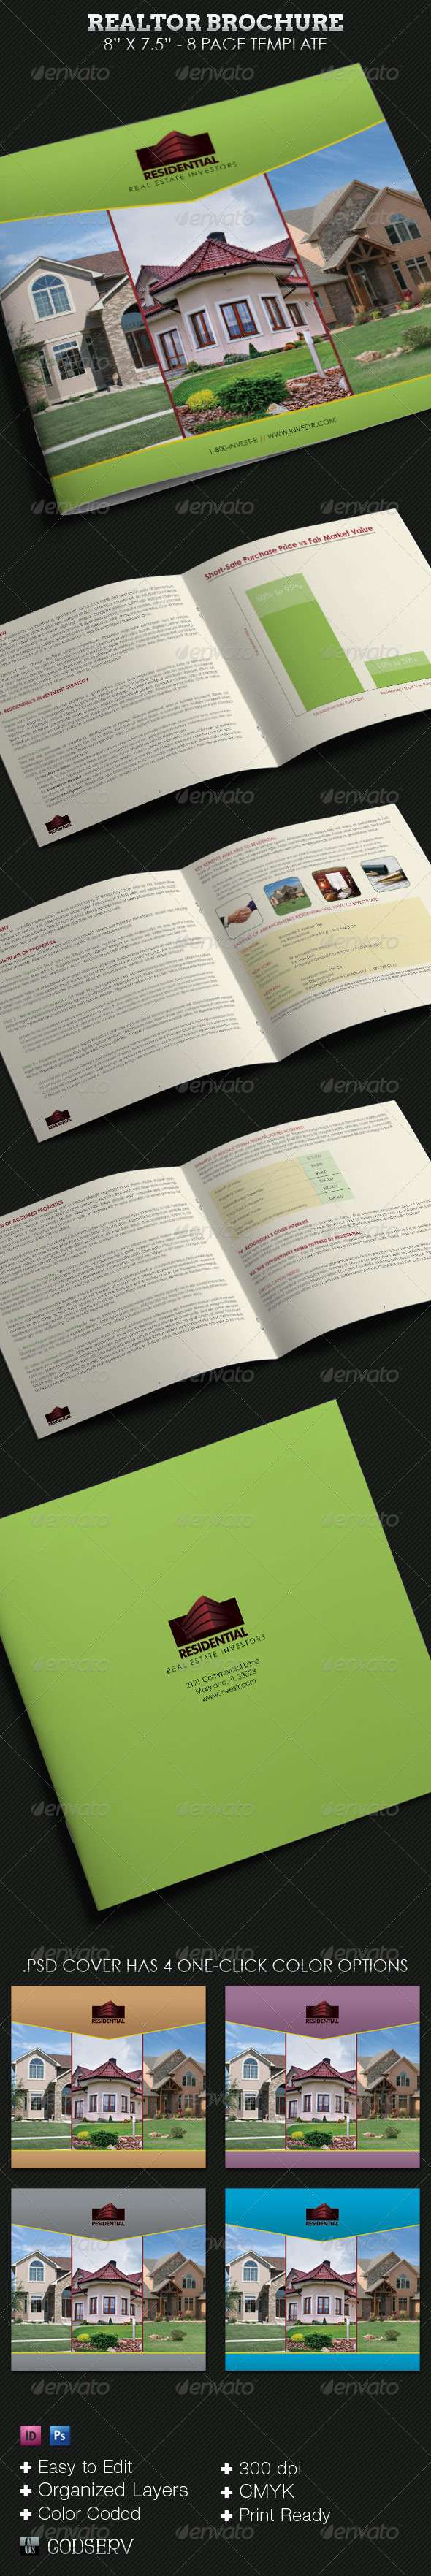 Real Estate Brochure Square Template - Corporate Brochures